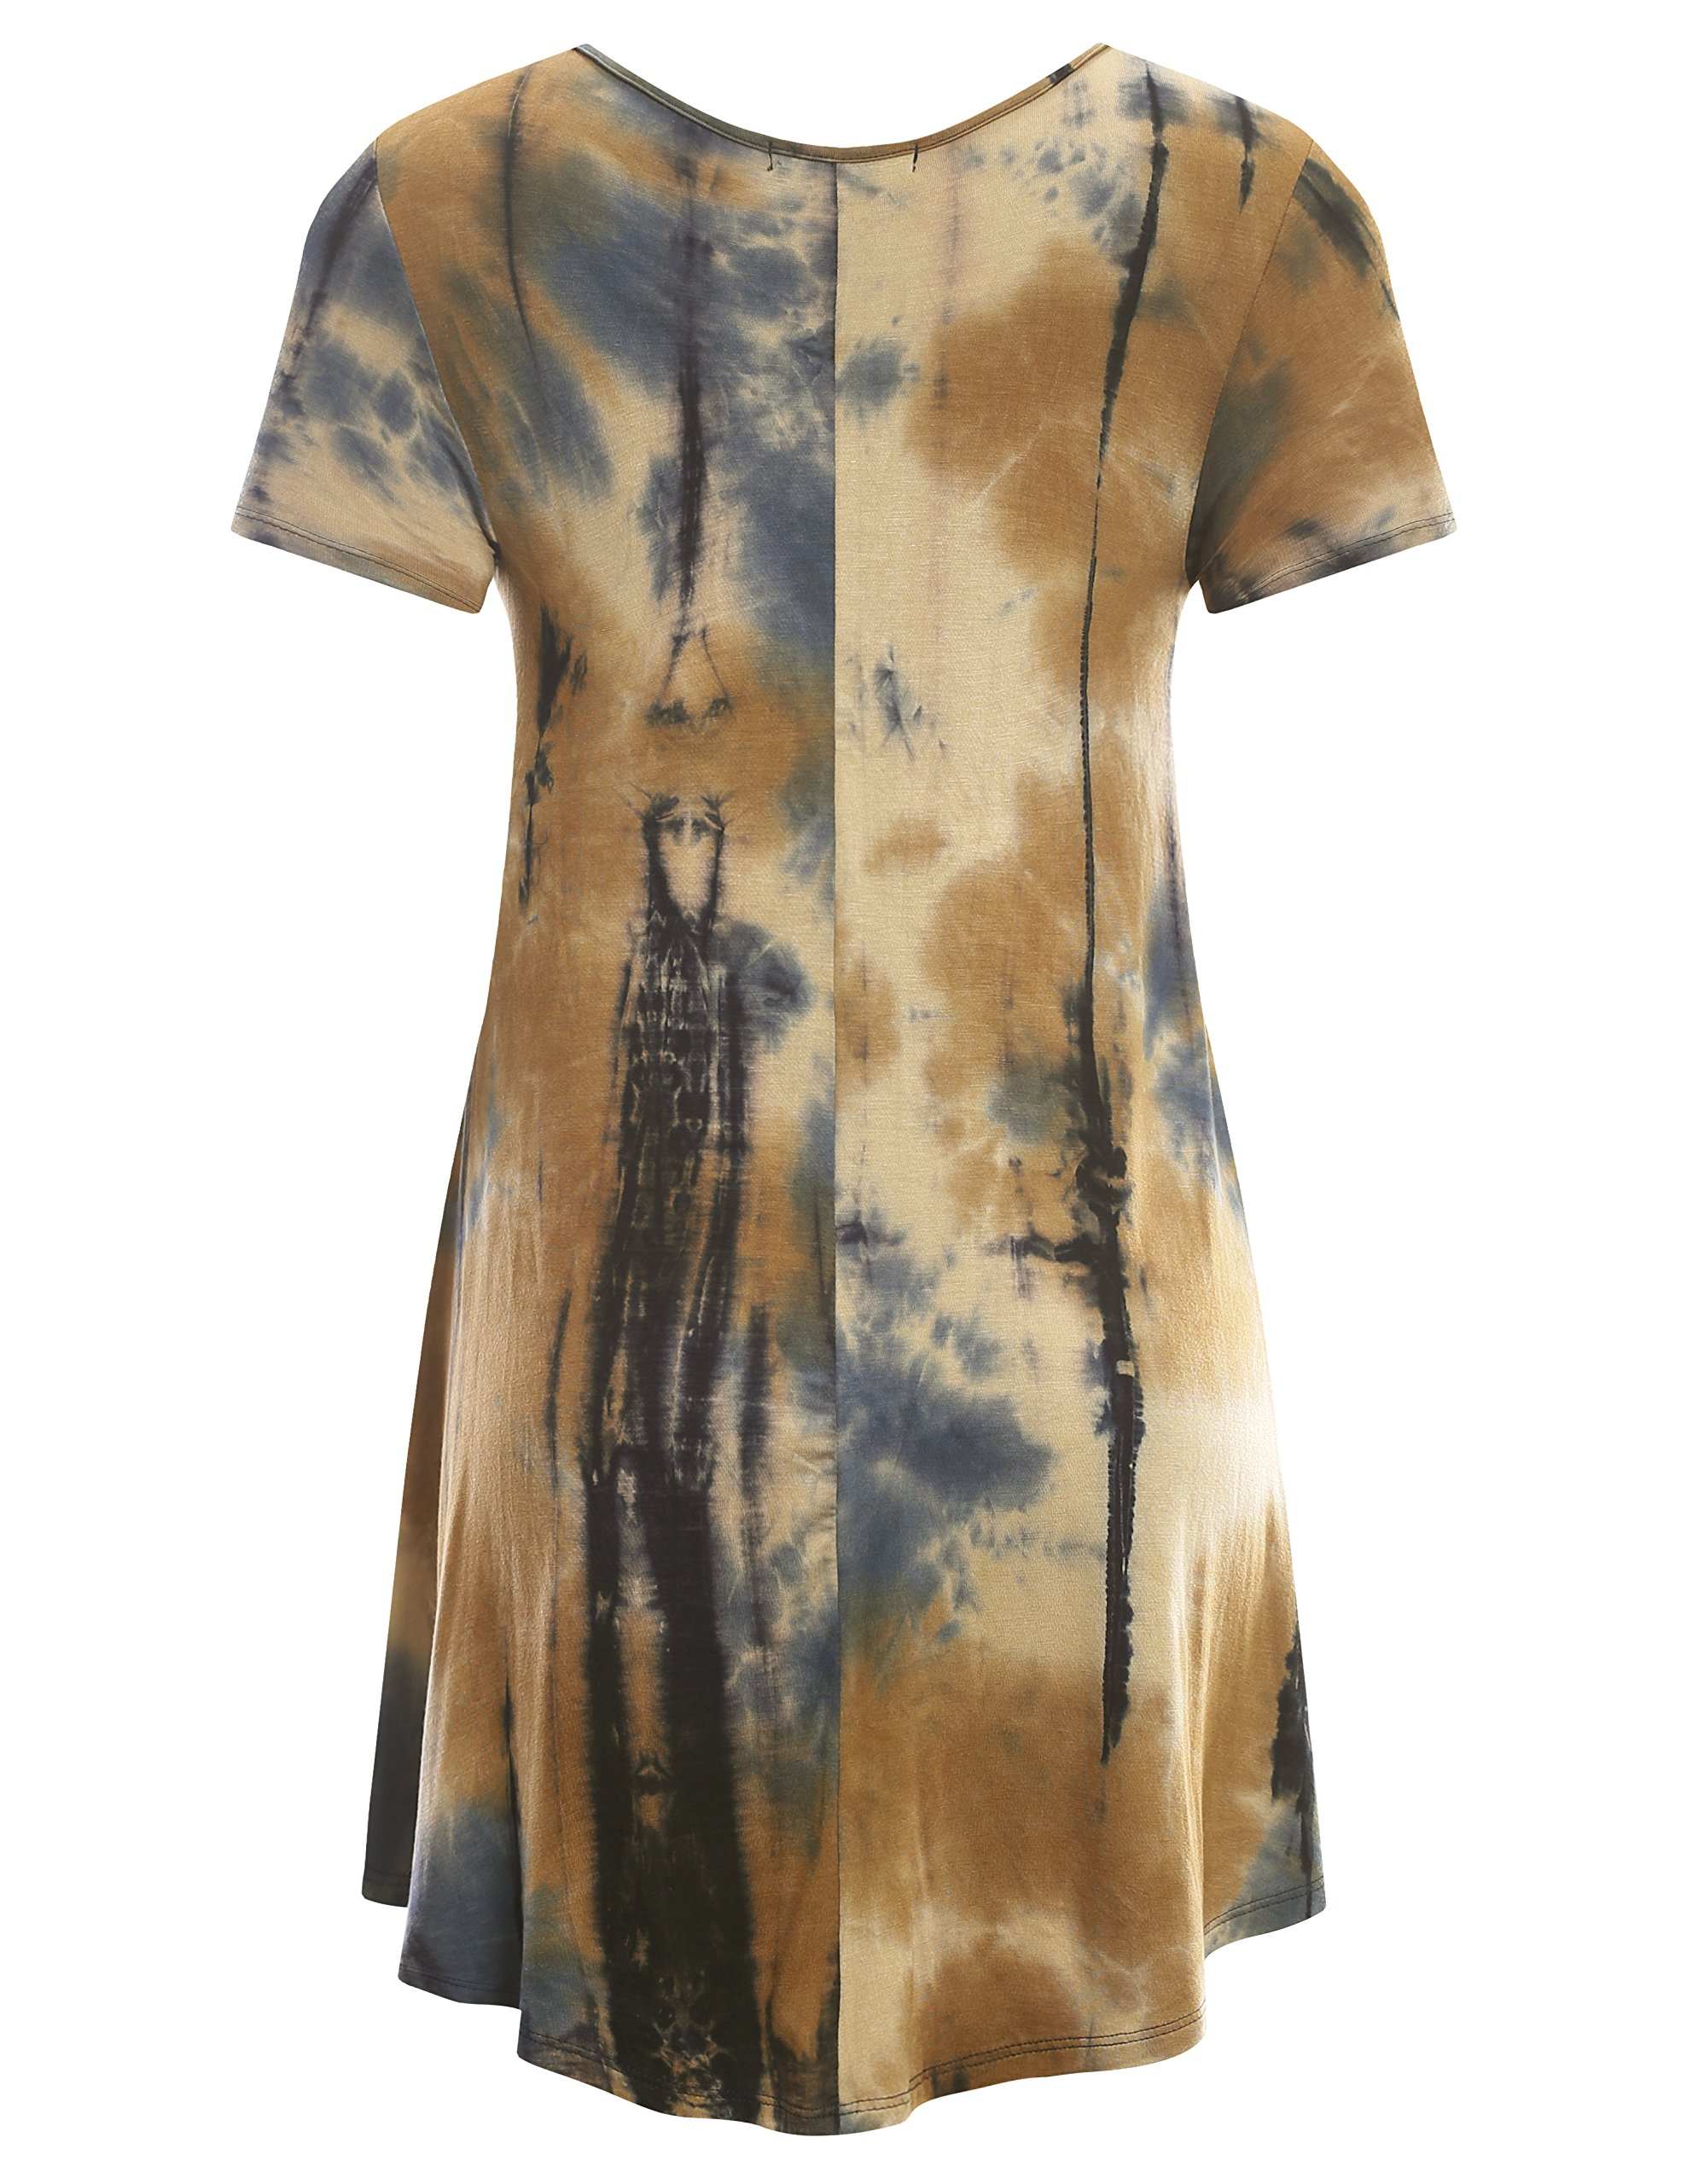 All for You Women's Short Sleeve V-Neck Flare Hem Floral Print Tunic Tie-Dye Taupe 2 X-Large by A.F.Y (Image #3)